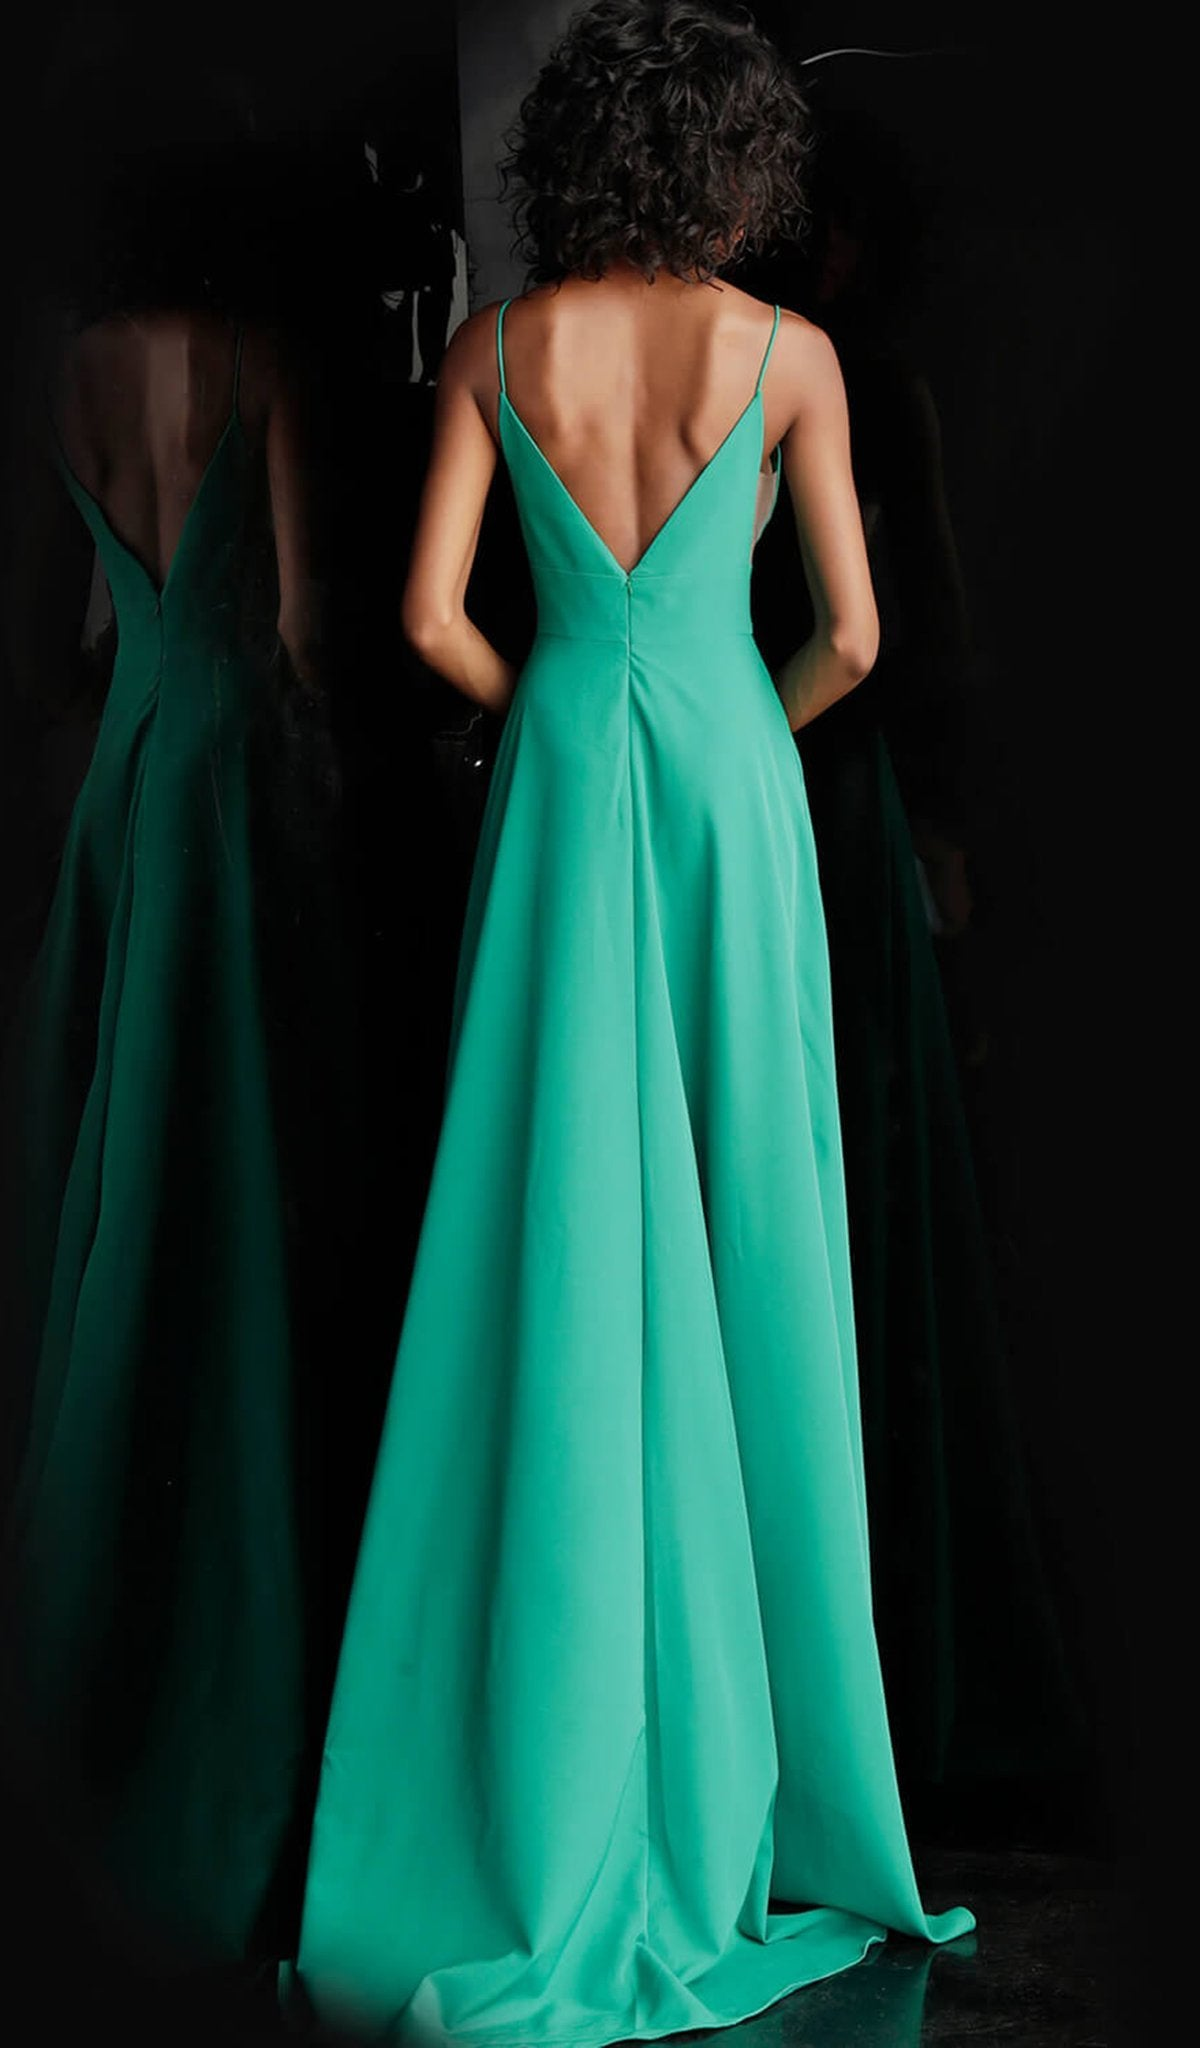 Jovani - Plunging Wrap-Over High Slit A-Line Evening Dress JVN68176 - 1 pc Green In Size 6 Available